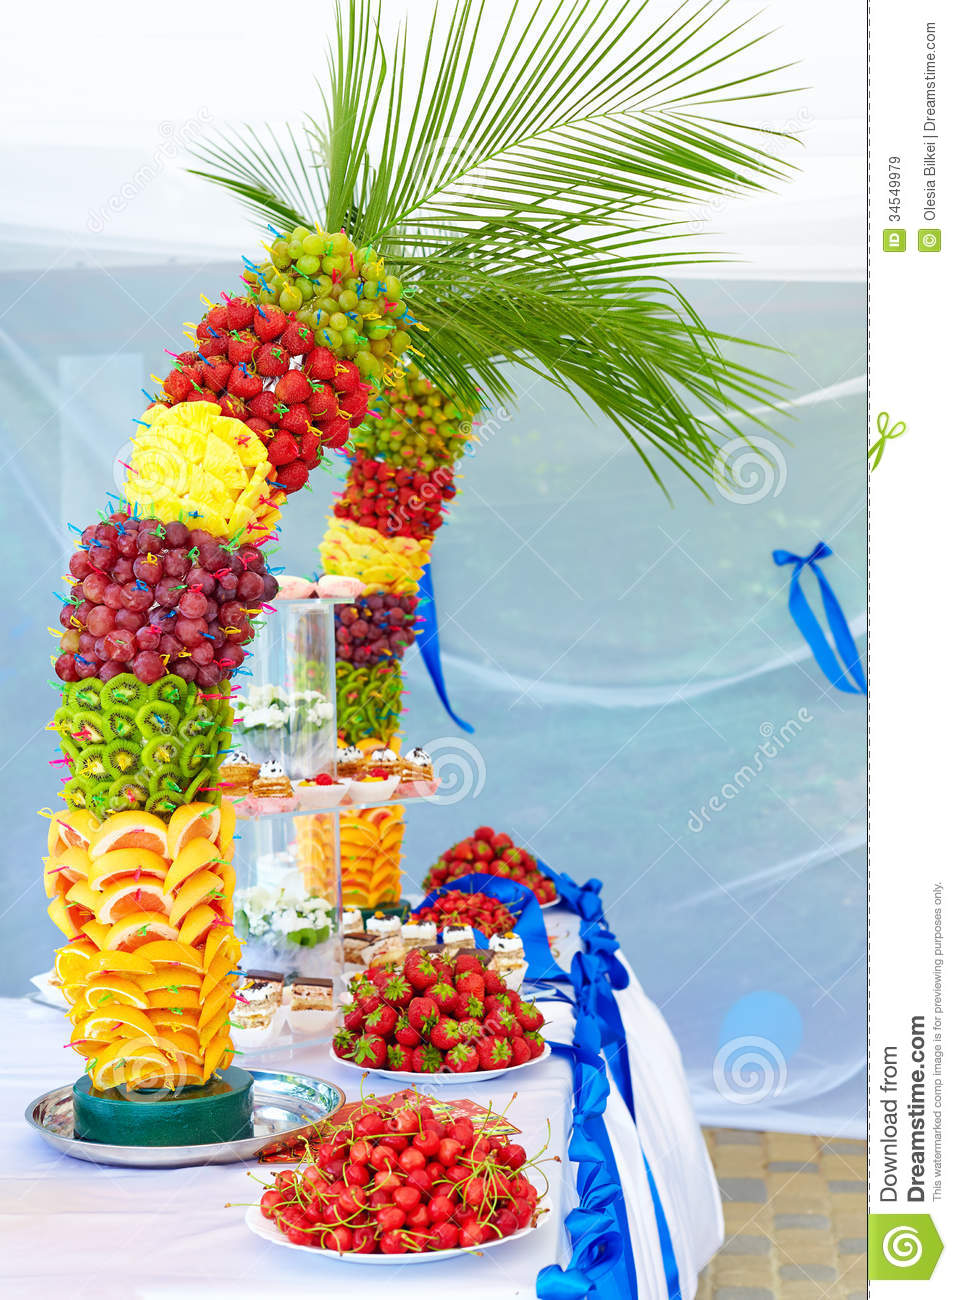 Fruit Cake Decoration Dress Up : Colorful Fruit And Cake Decoration On Banquet Party ...